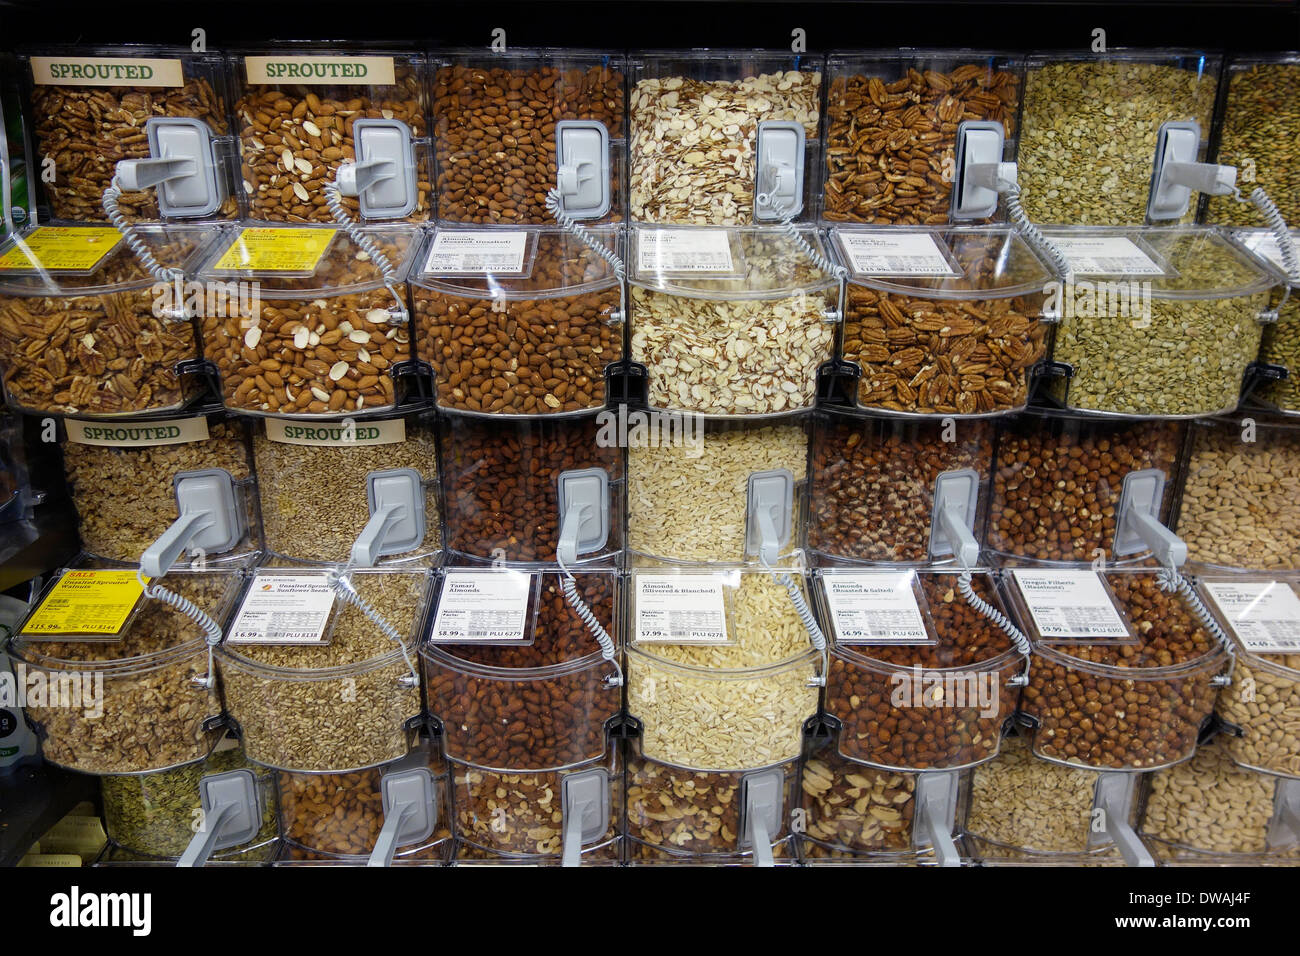 Bulk Store Foods Stock Photos & Bulk Store Foods Stock Images - Alamy